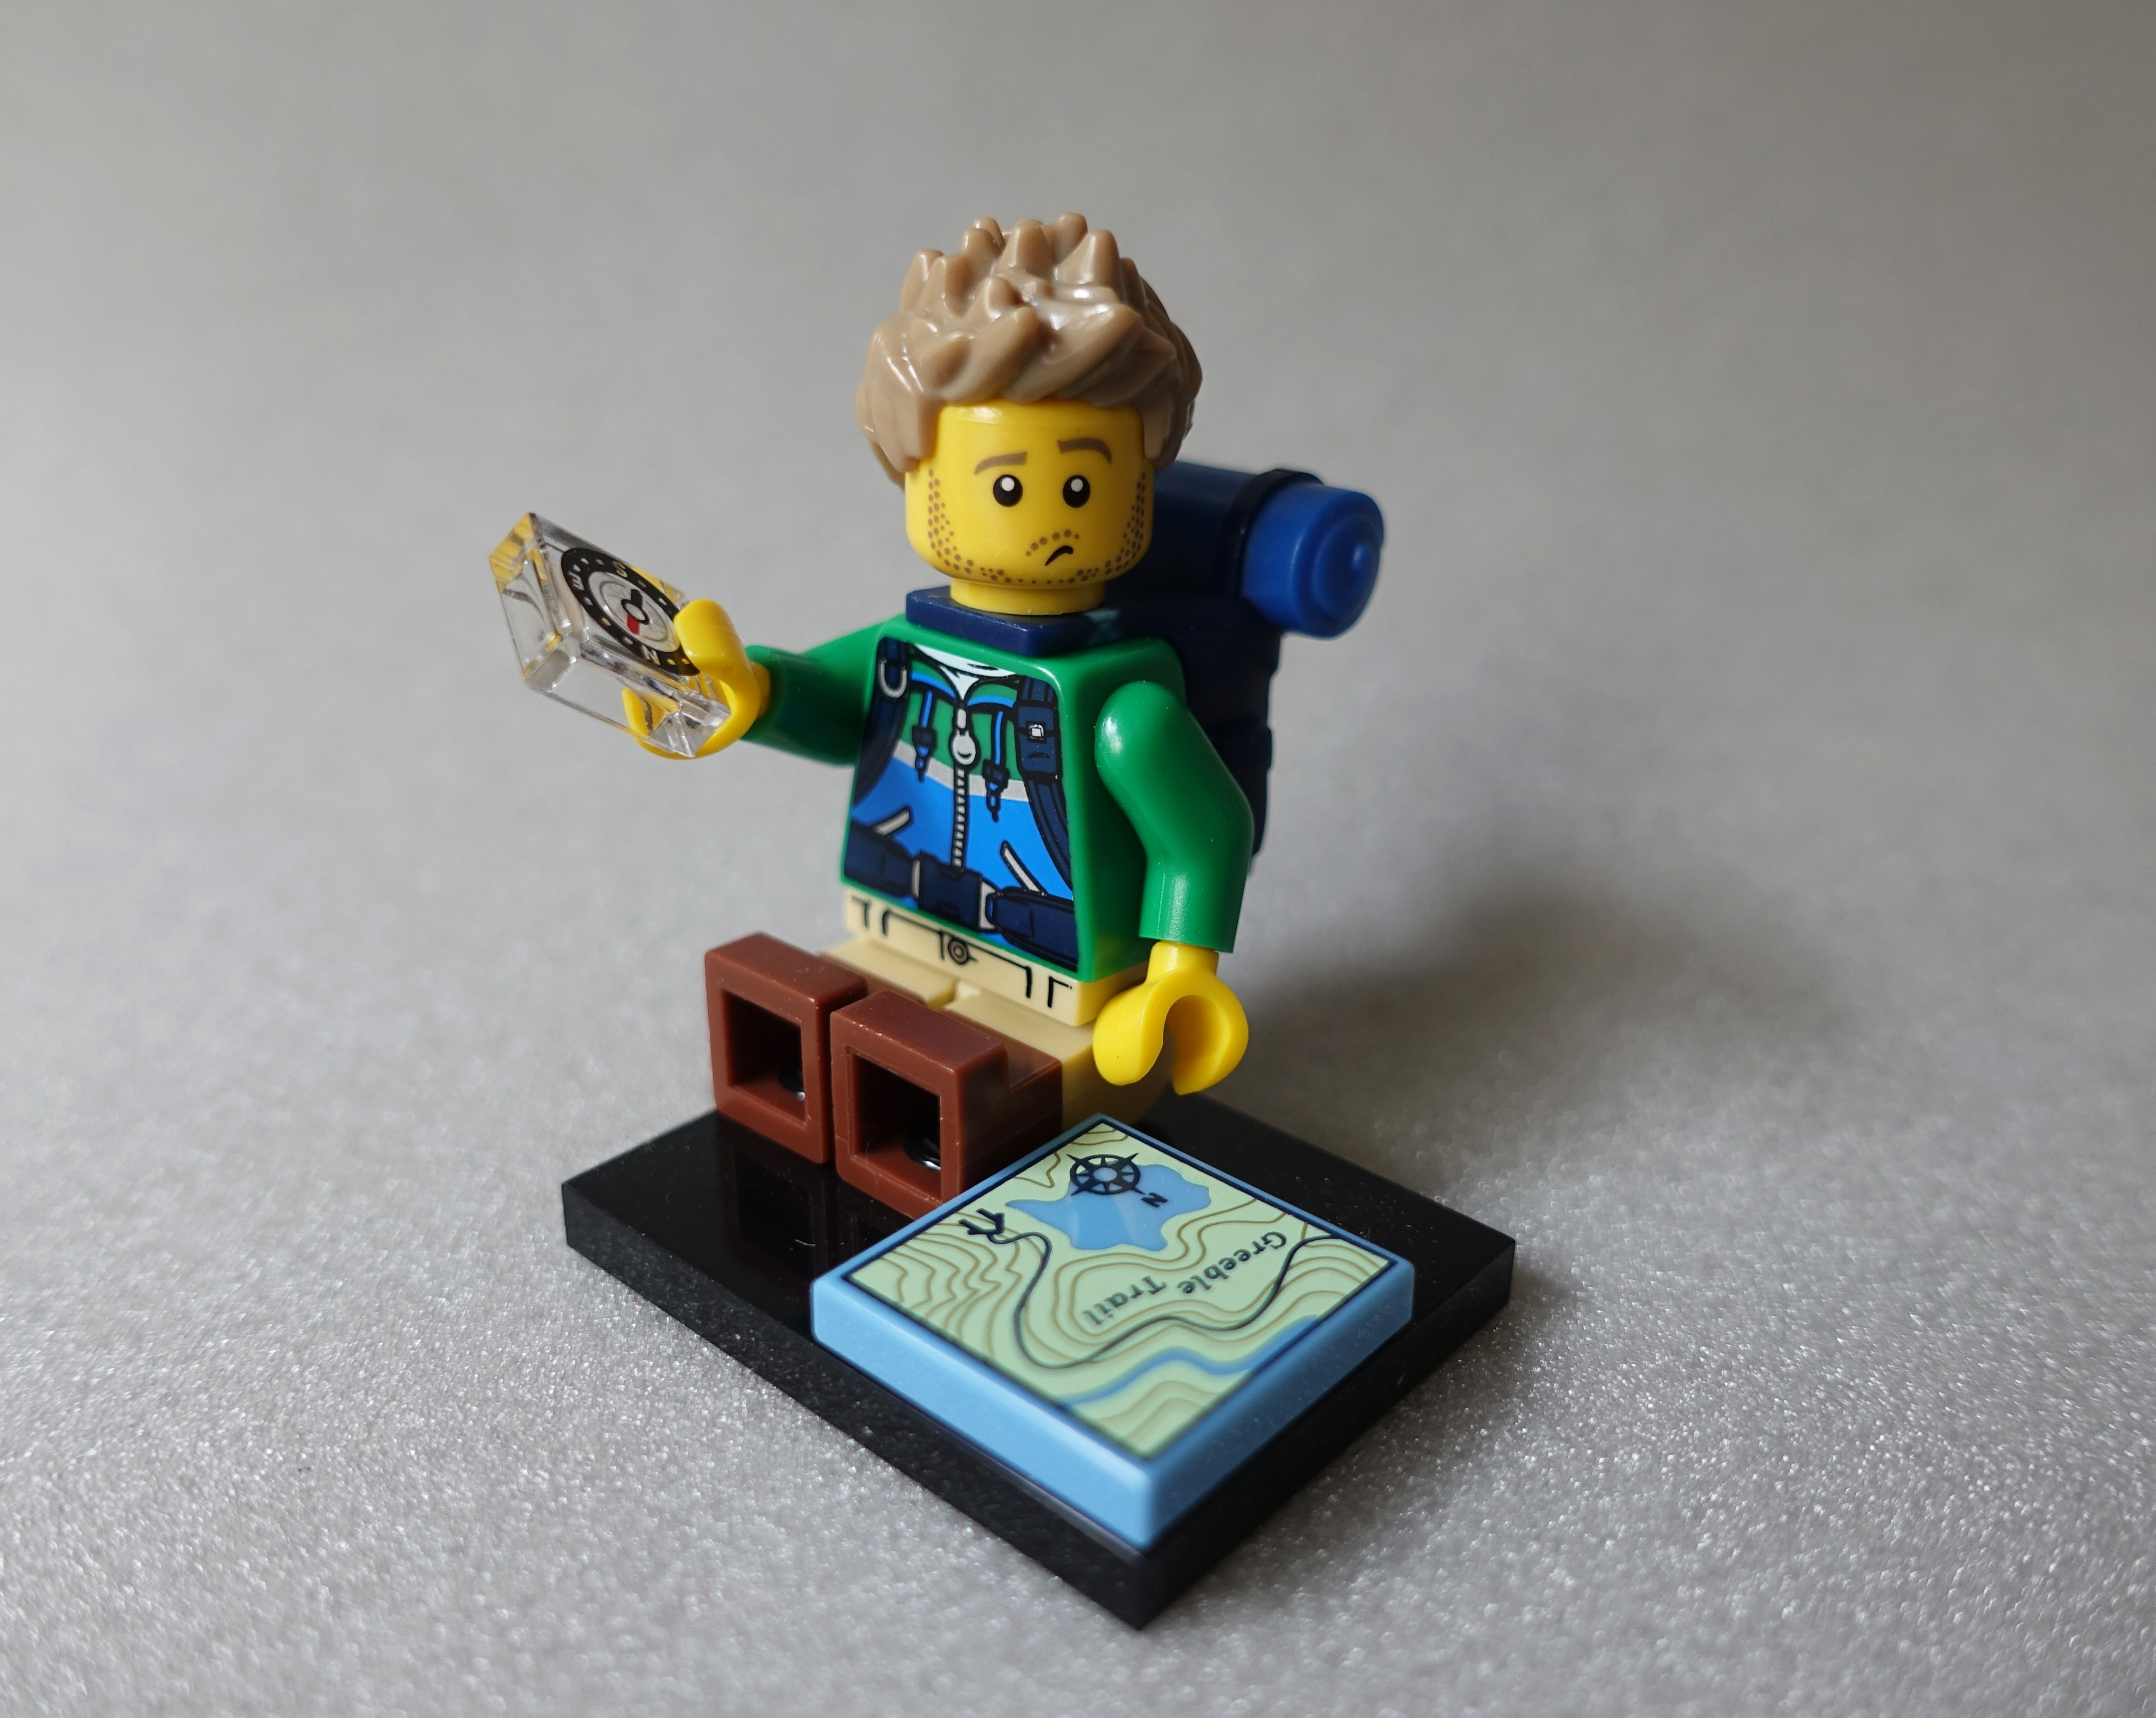 Lego Hiker is locationally embarrased